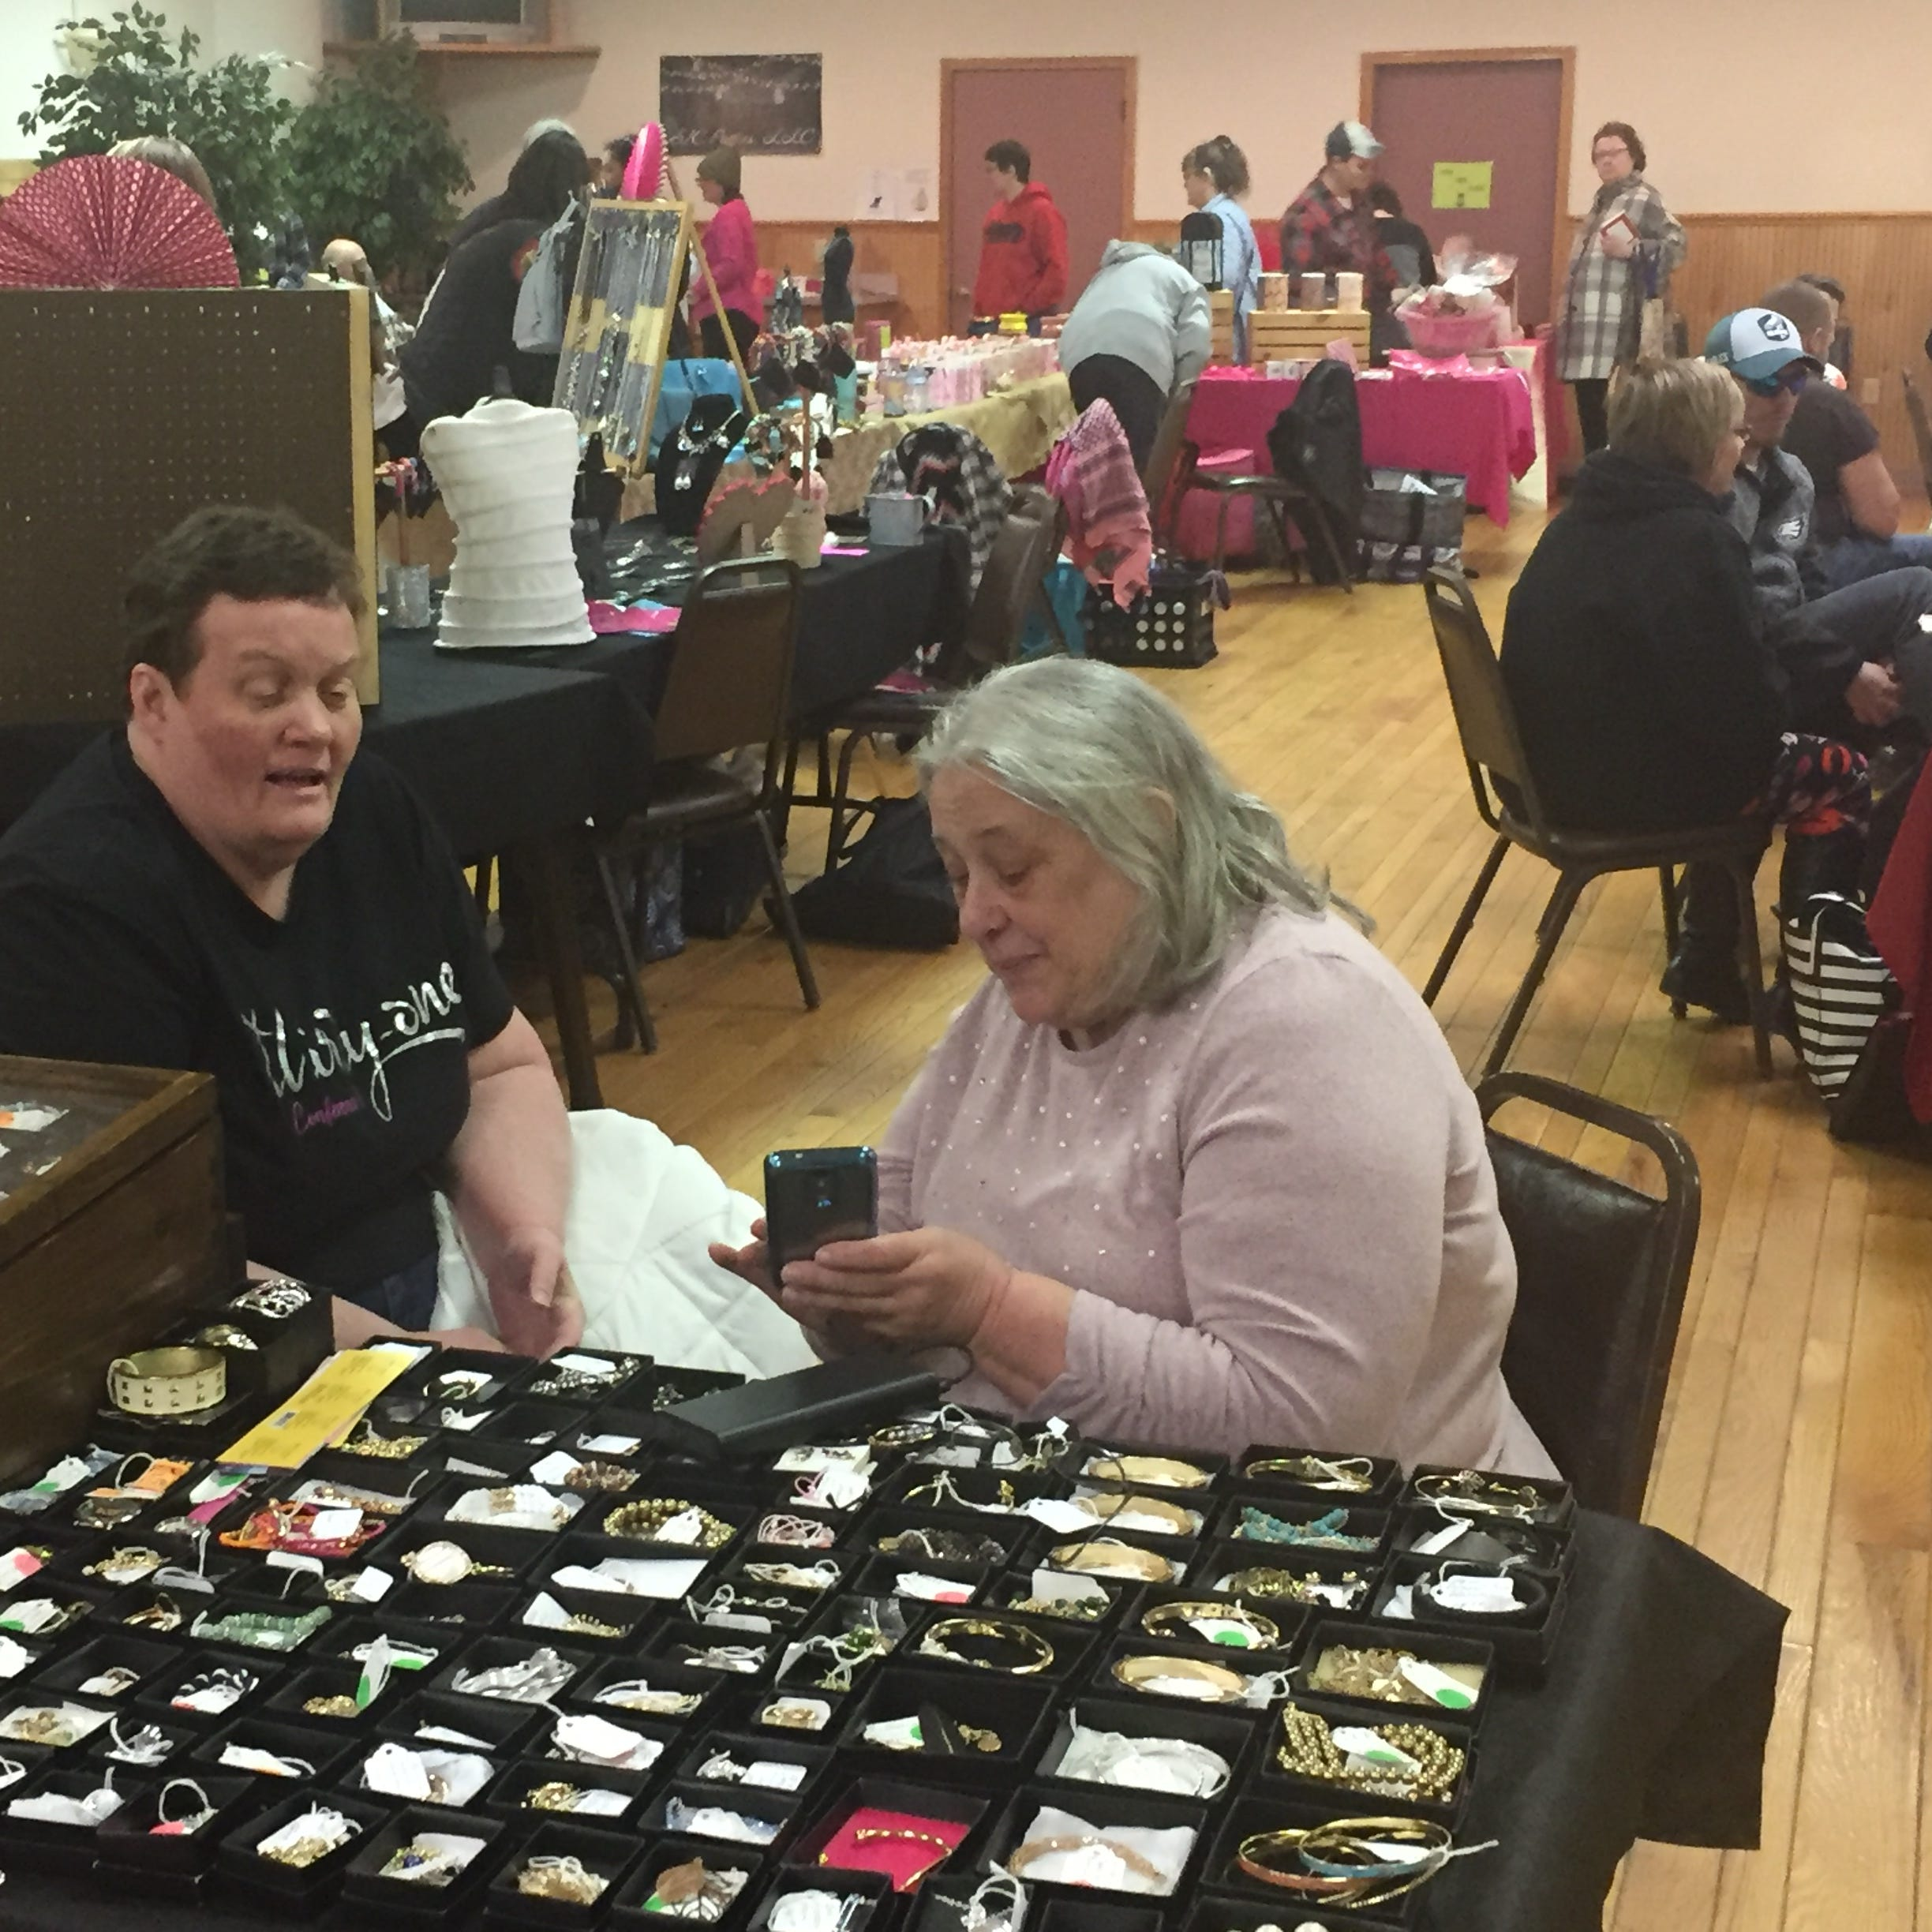 Plenty of craft shows, bazaars coming in April, May